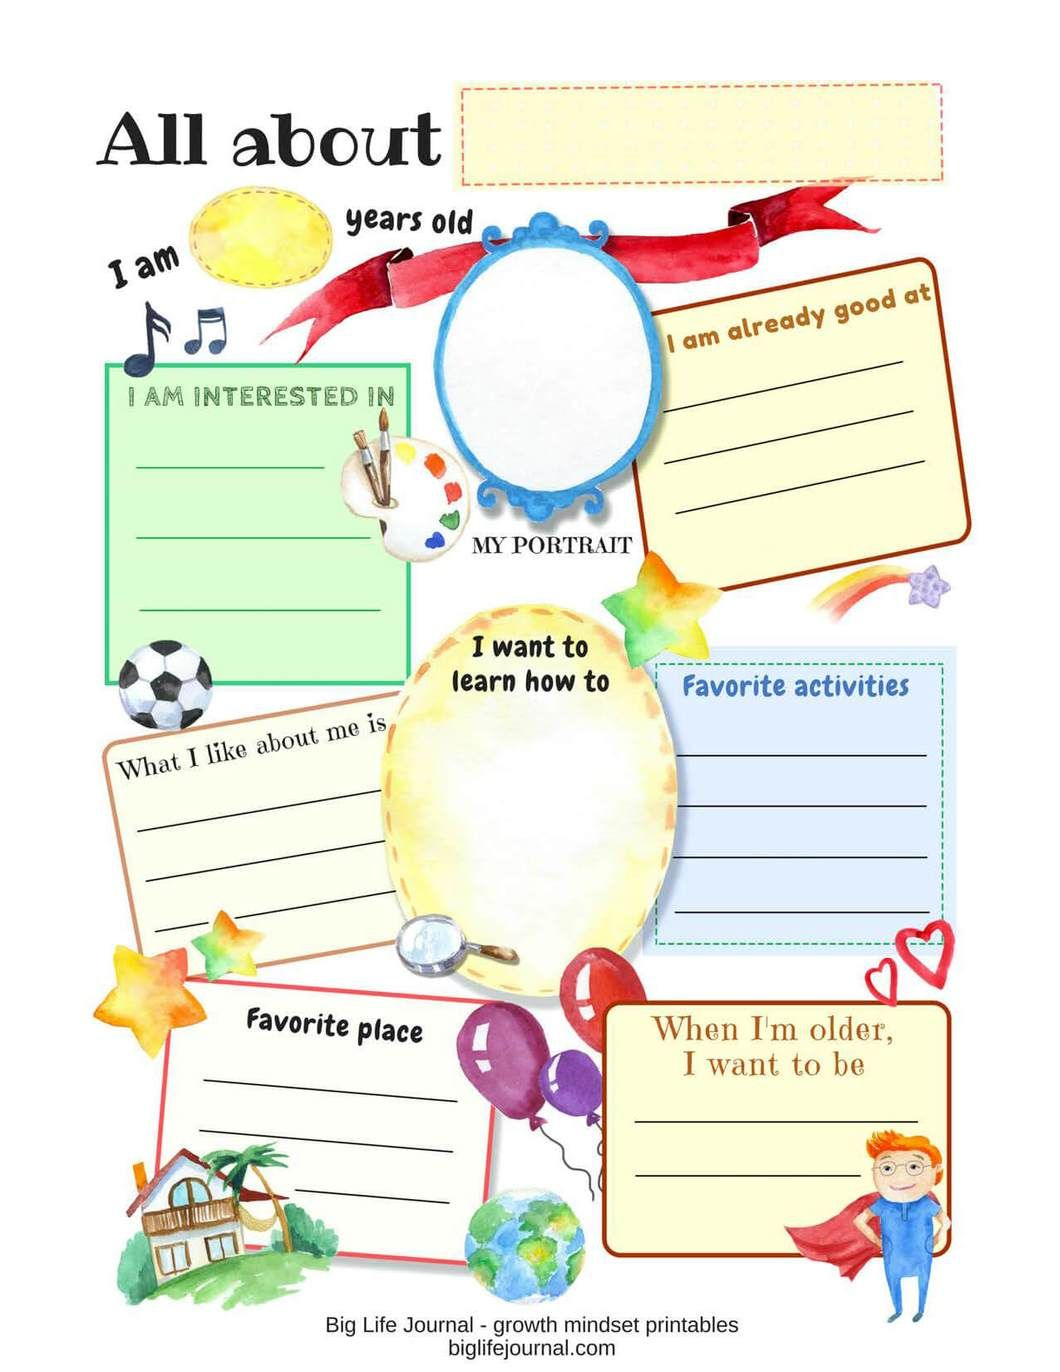 Growth Mindset Printables Kit With Images